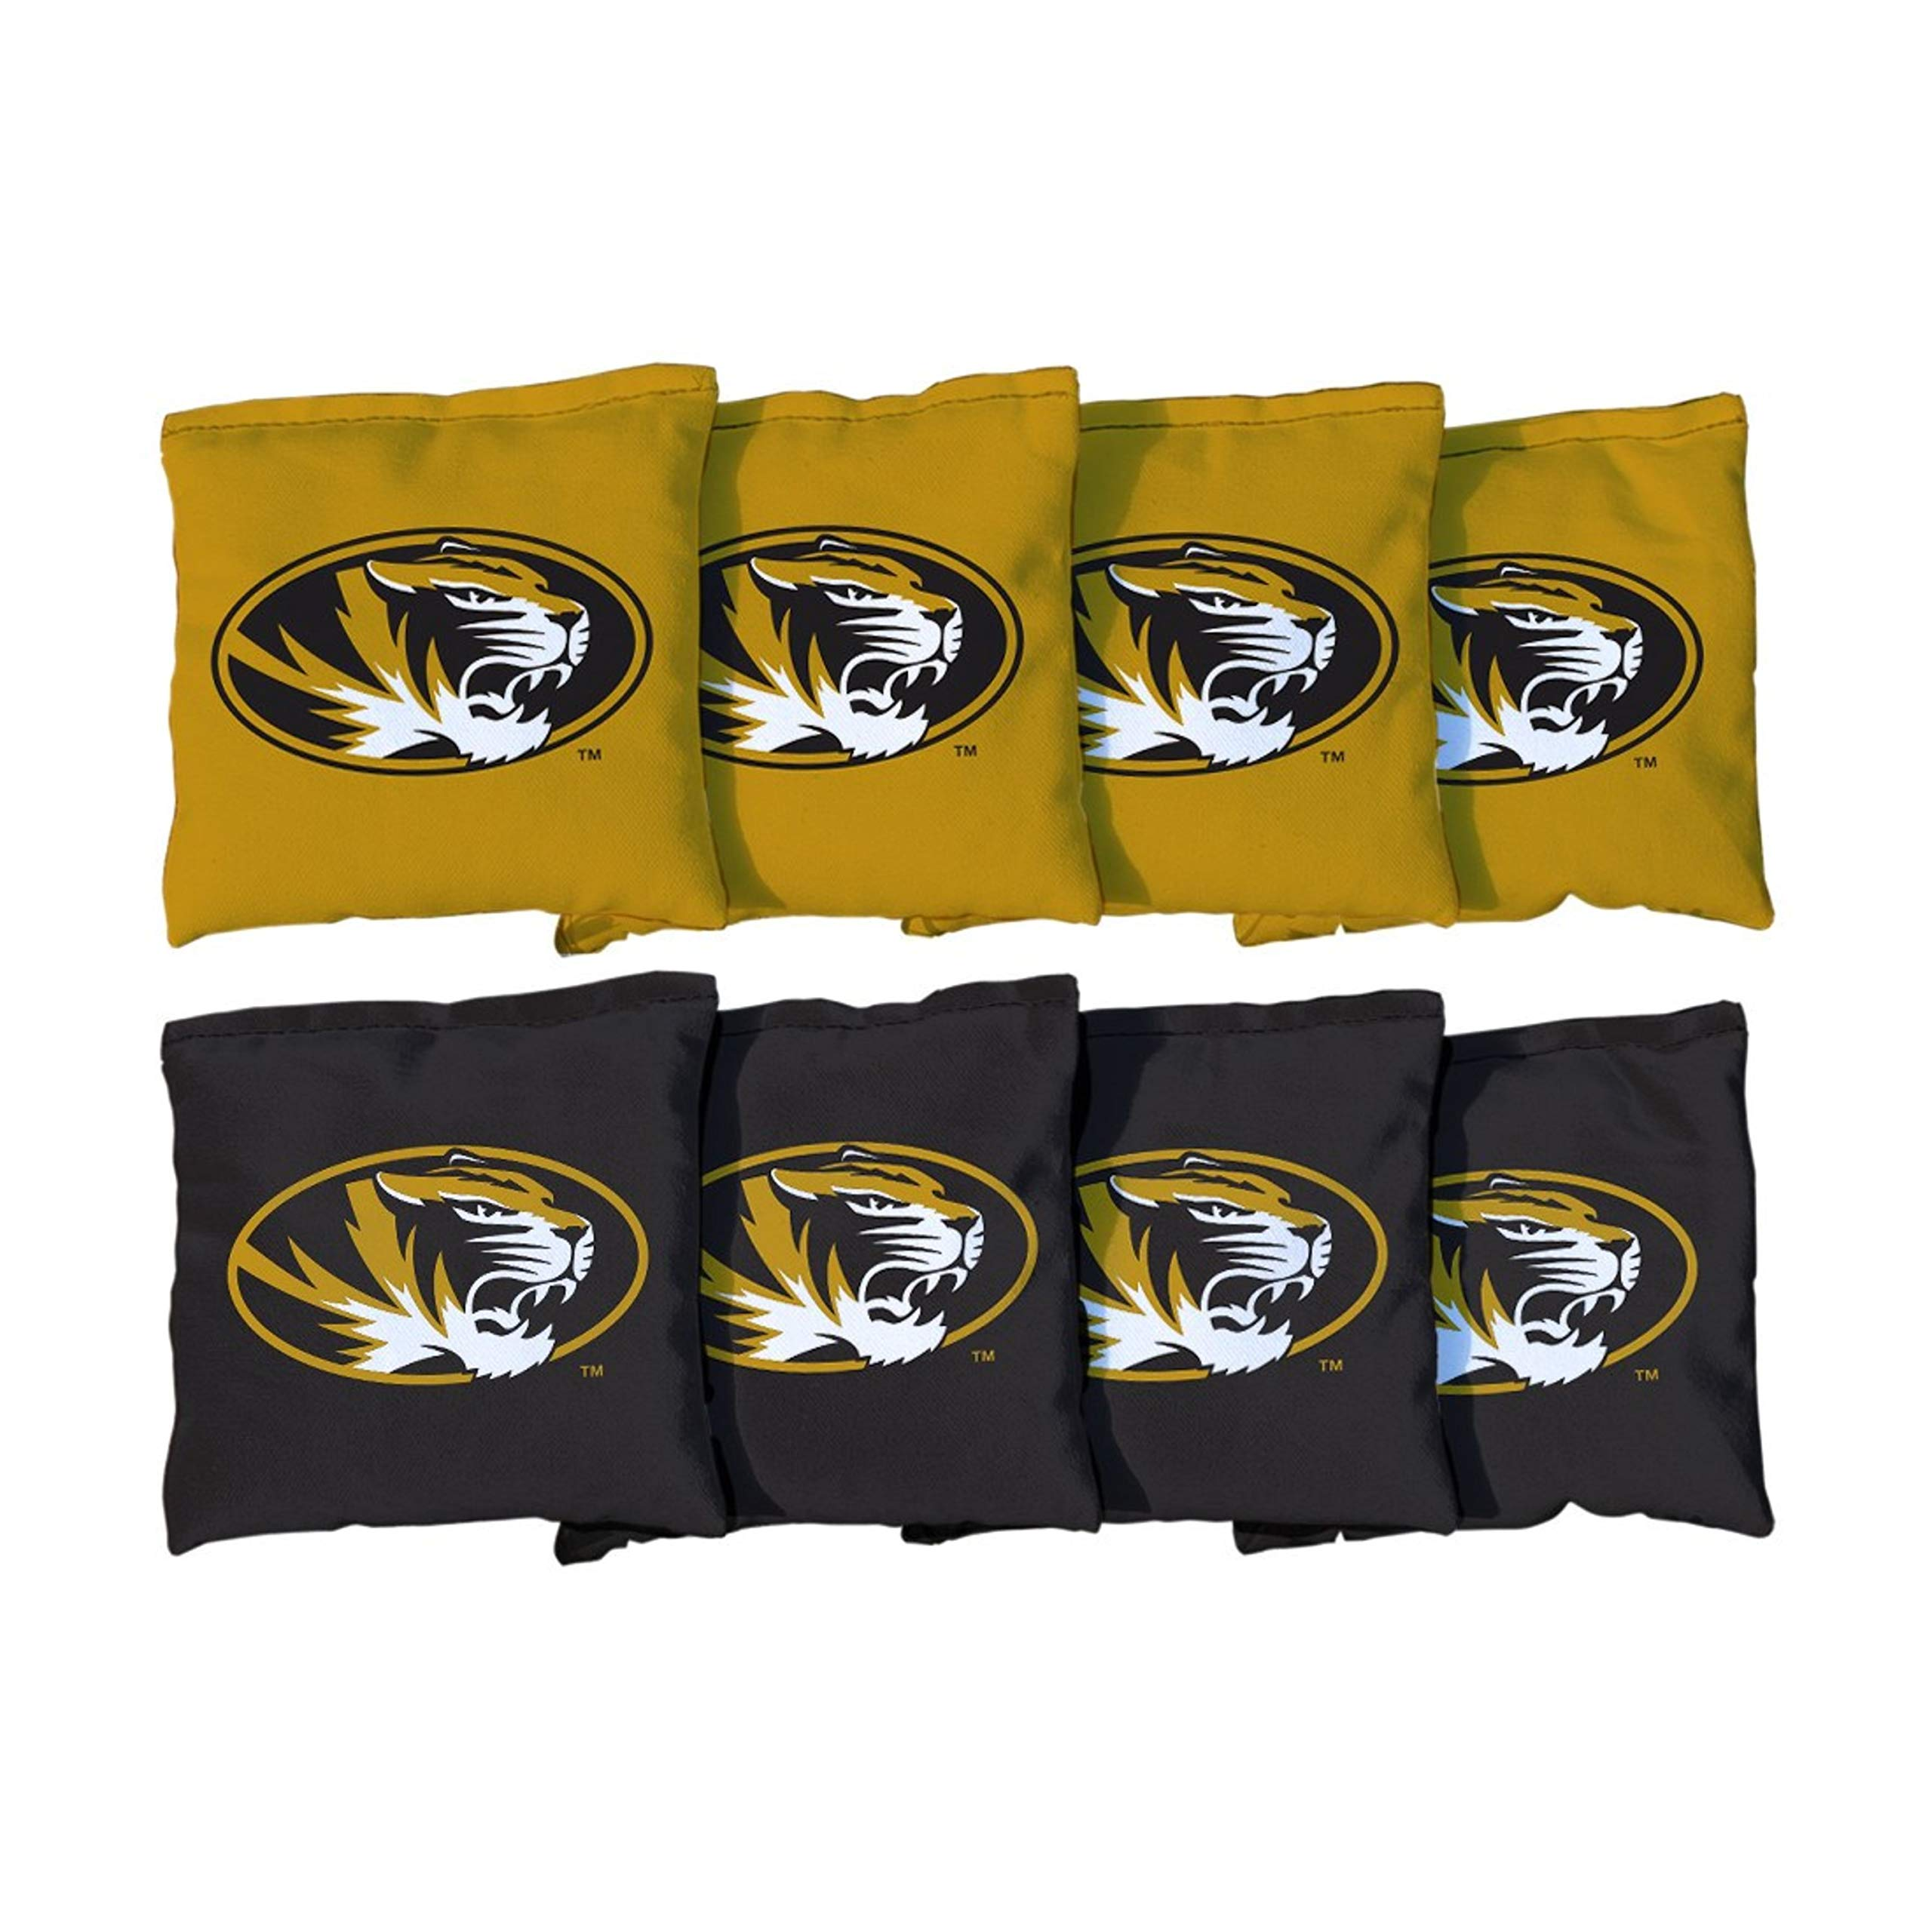 Victory Tailgate NCAA Regulation All Weather Cornhole Game Bag Set - 8 Bags Included - Missouri Mizzou Tigers by Victory Tailgate